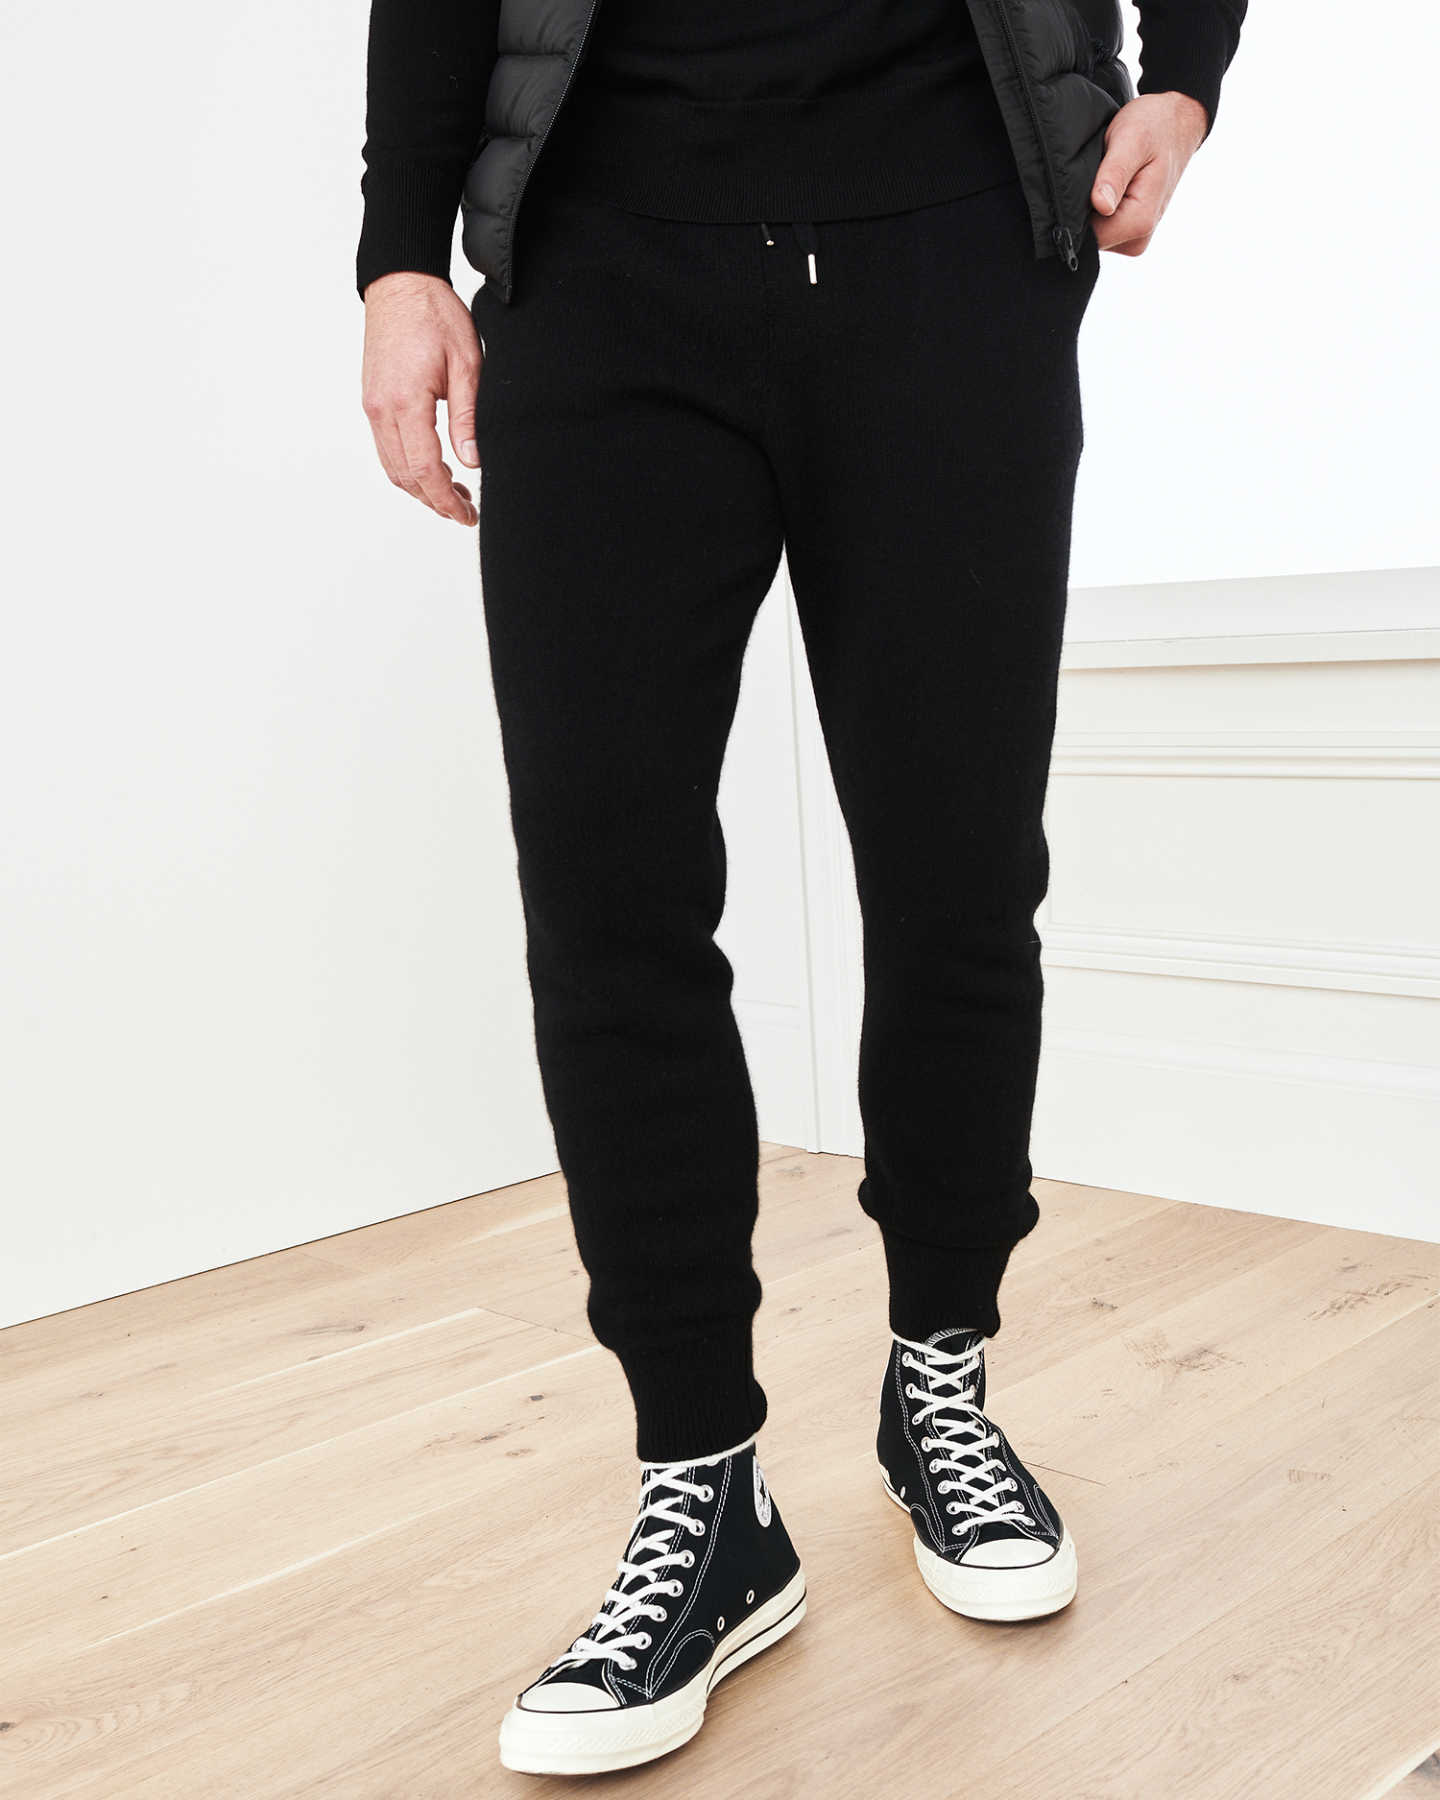 Man wearing cashmere men's cashmere joggers / cashmere sweatpants in black